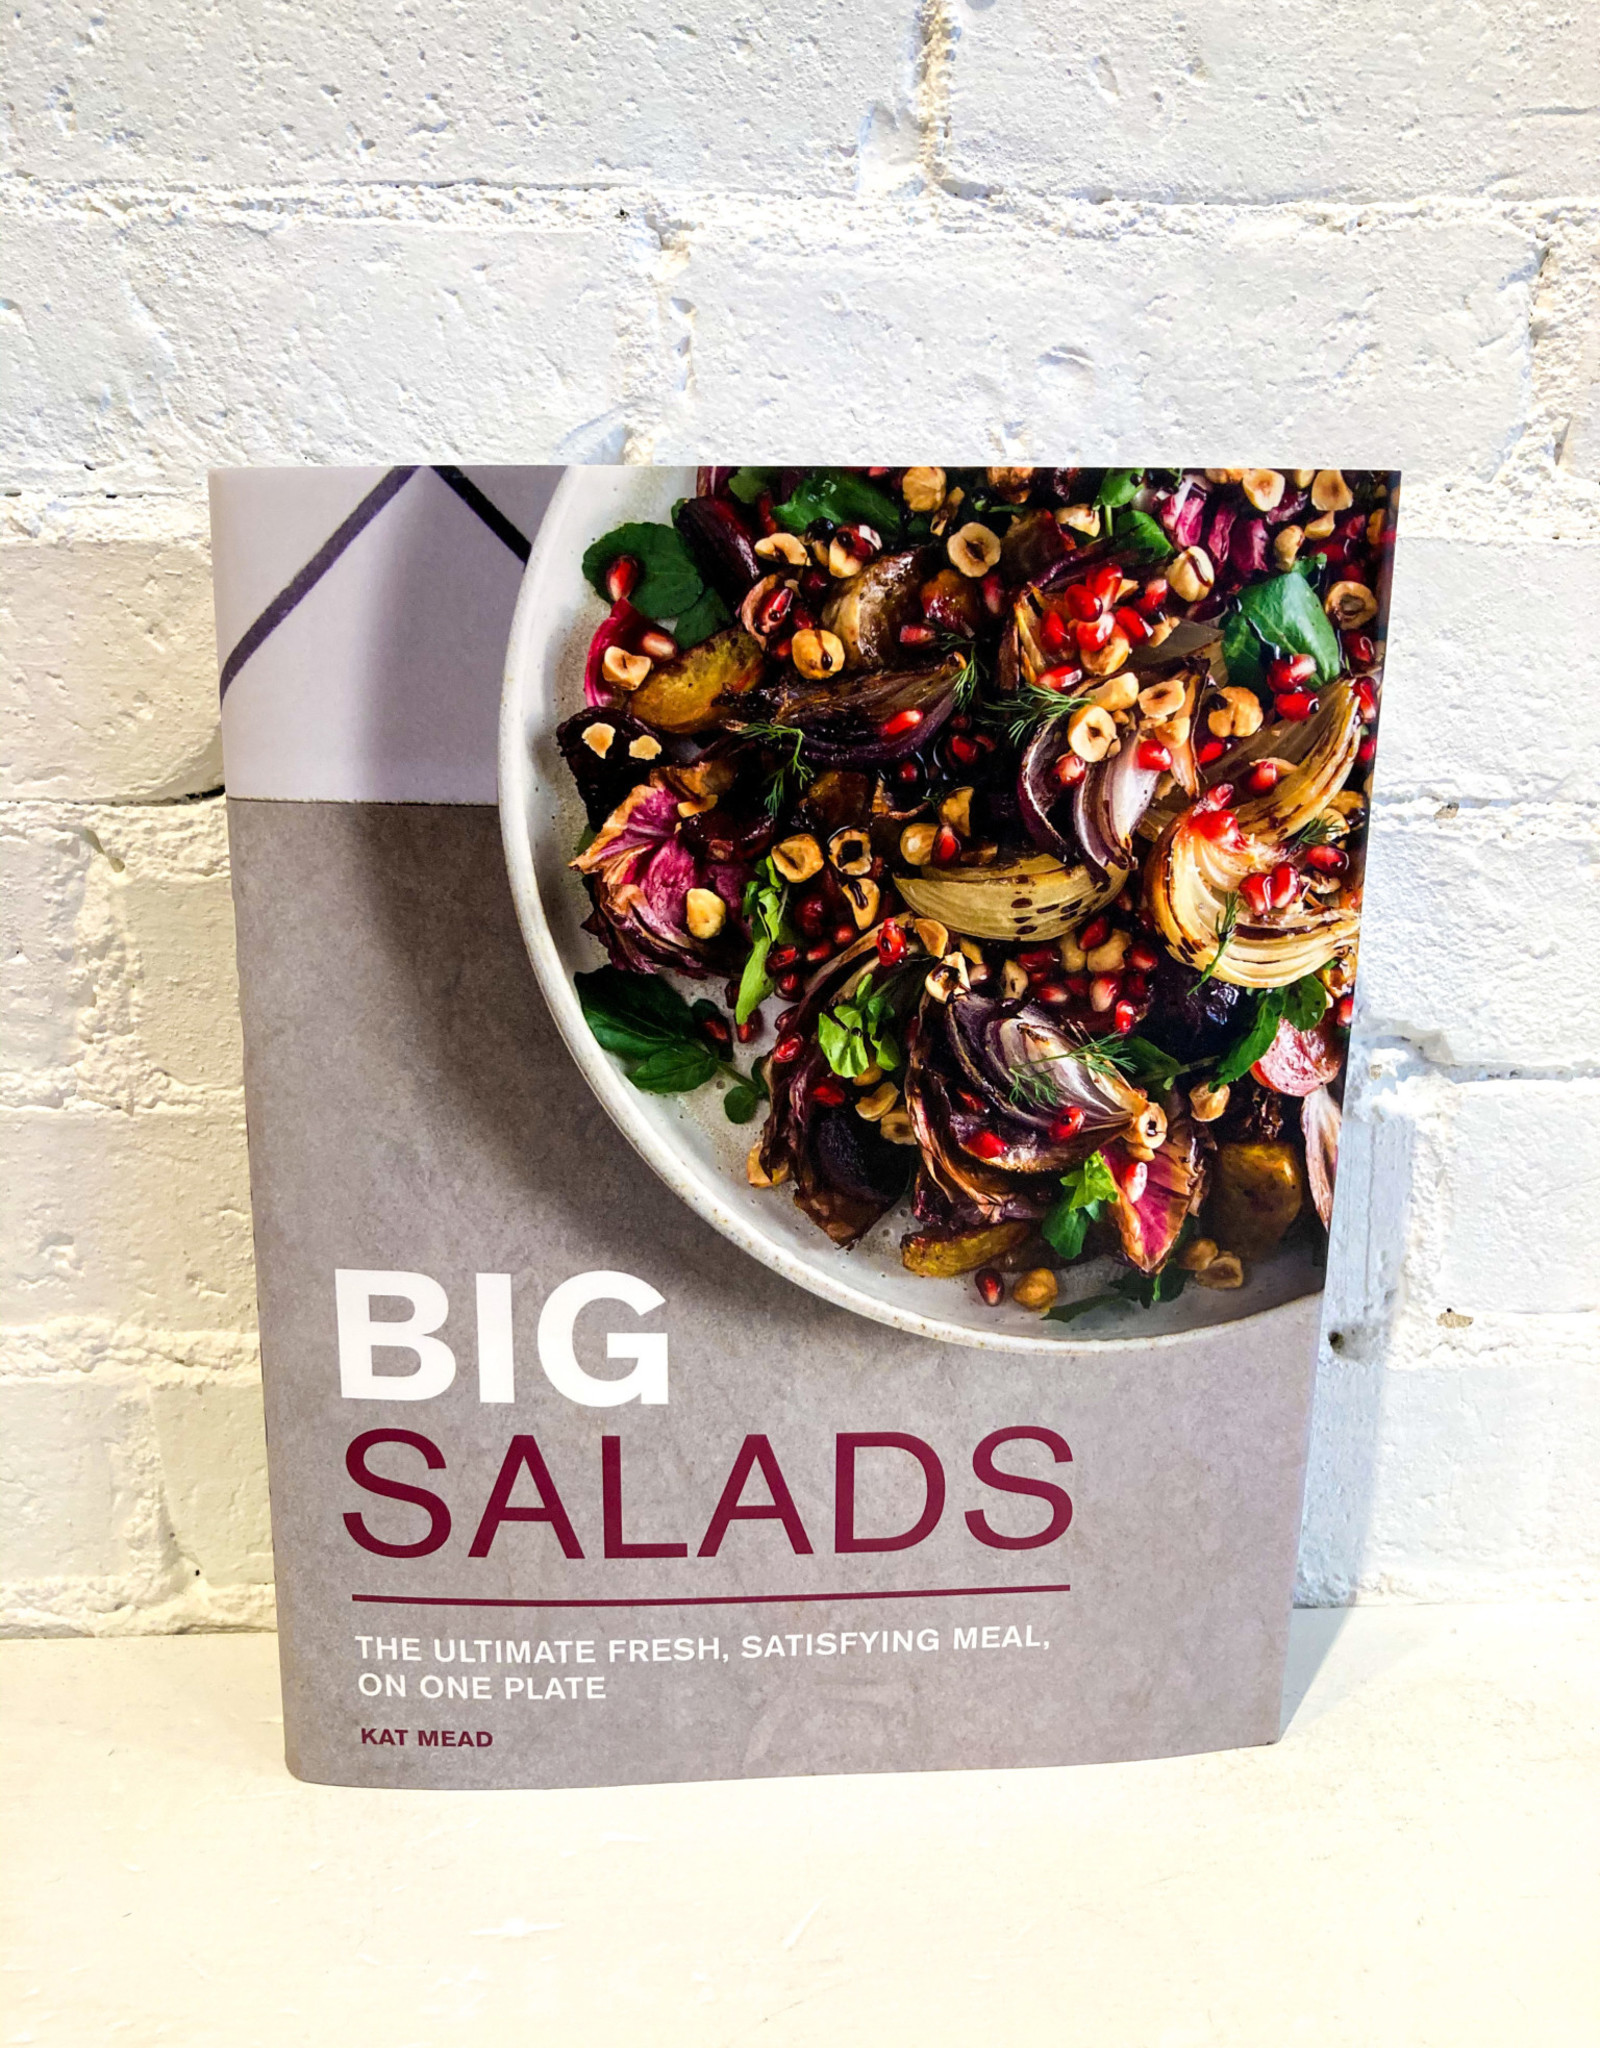 Big Salads by Kat Mead